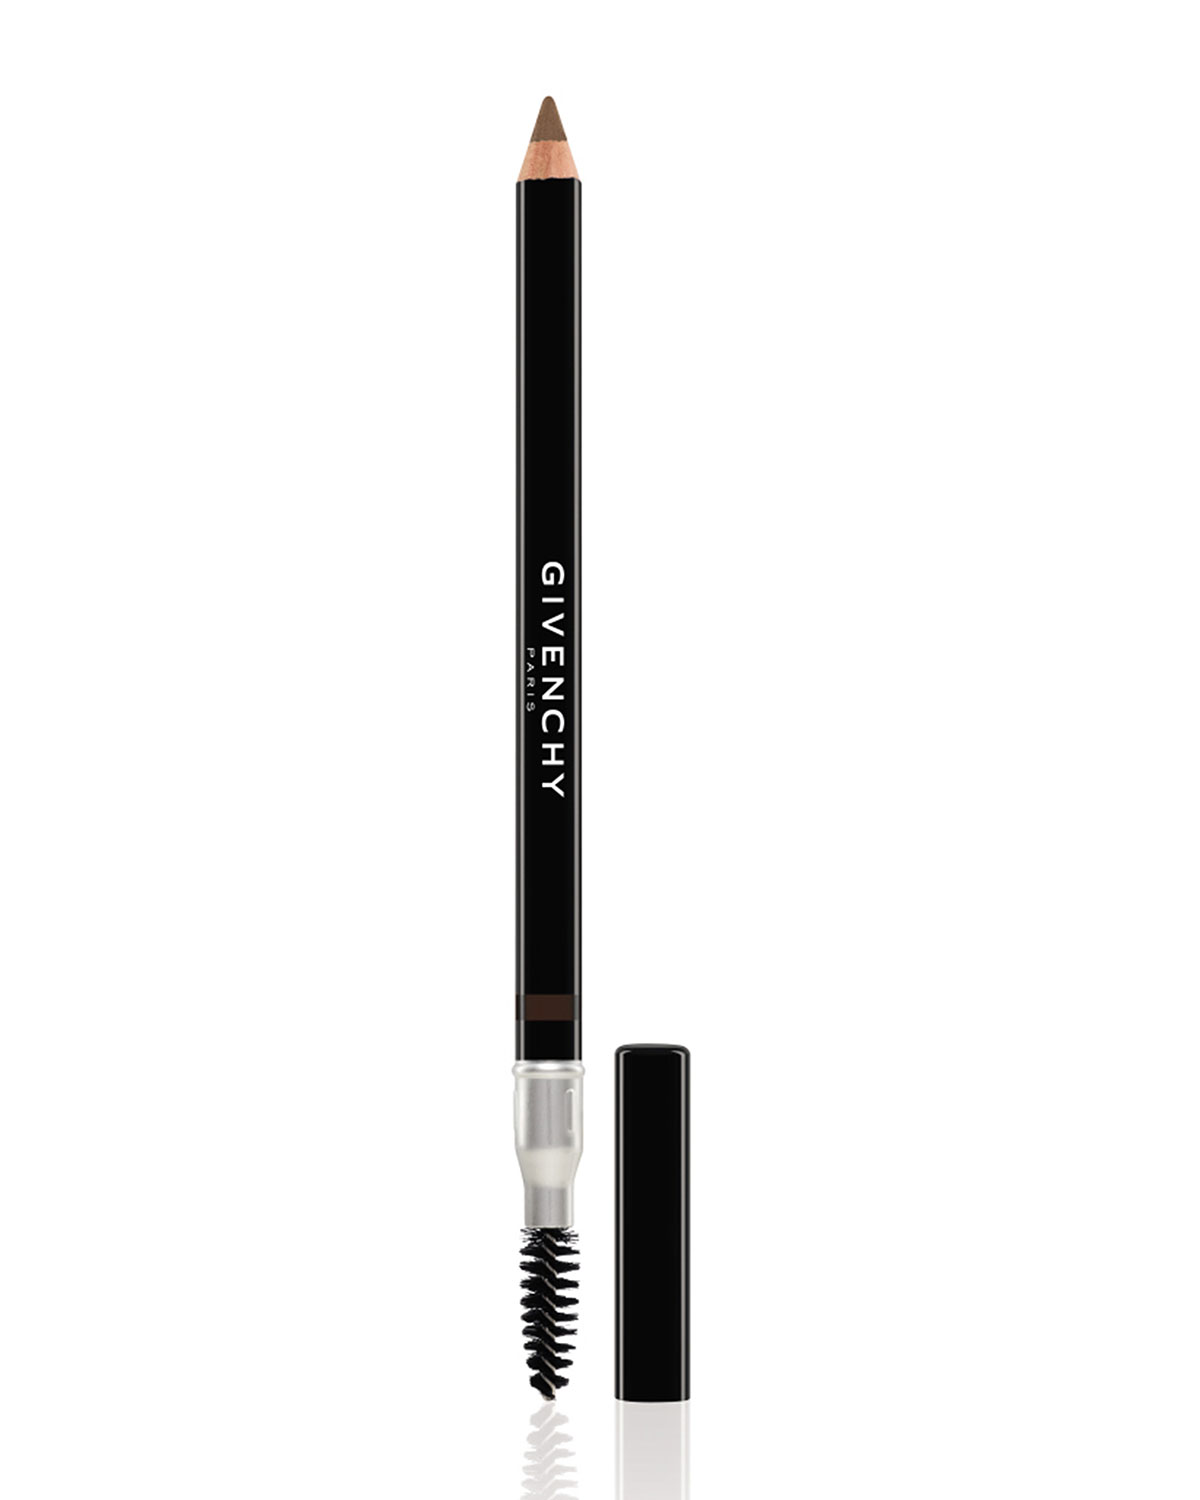 Eyebrow Show Glide-On Brow Definer, Brown Show - Givenchy